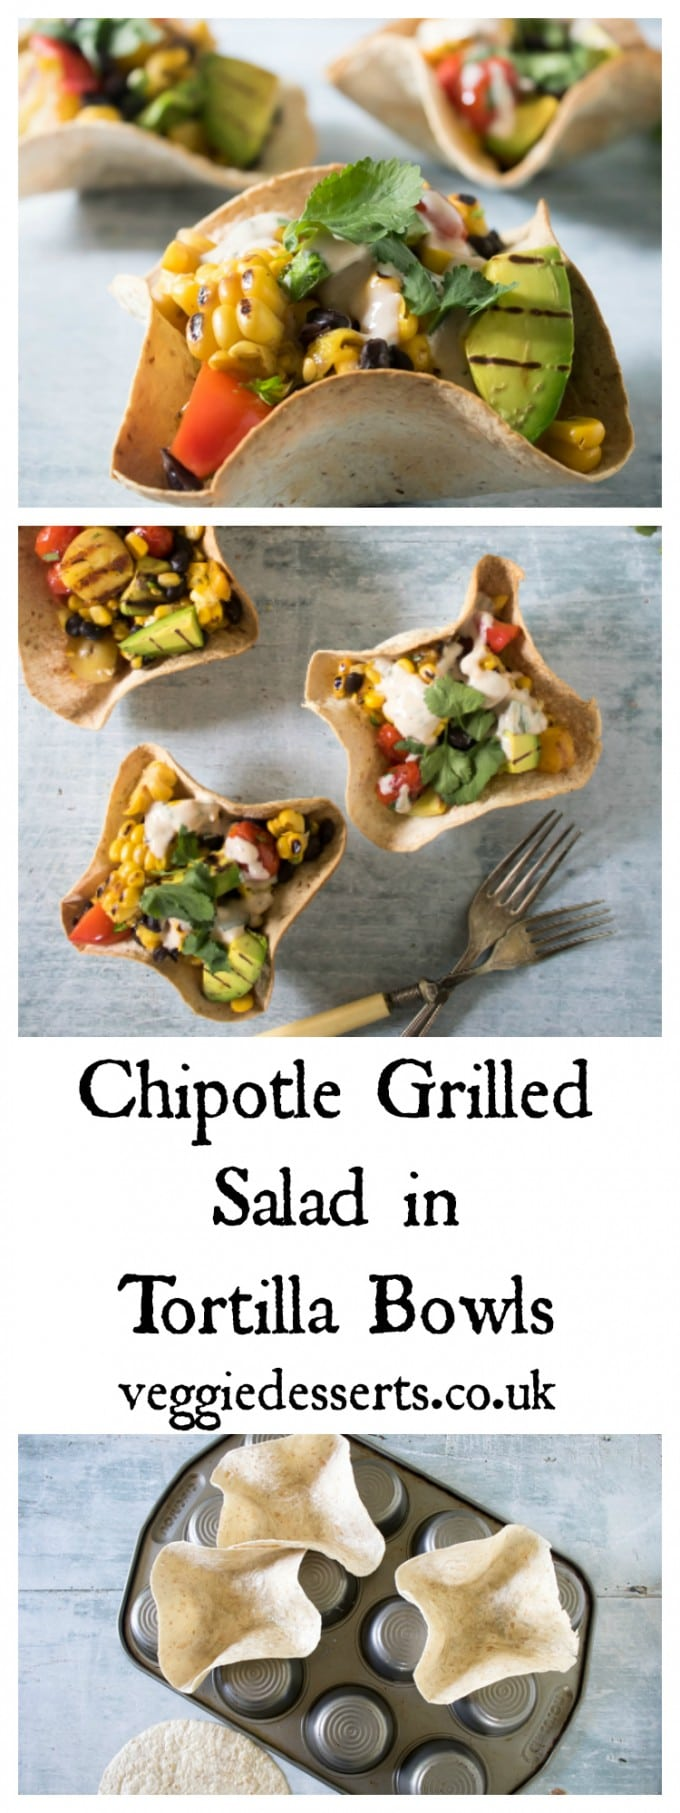 Fun, tasty and easy tortilla bowls filled with Mexican chipotle grilled salad and black beans. #tortillabowls #salad #mexicanrecipe #chipotlerecipe #grilledsalad #barbecuefood